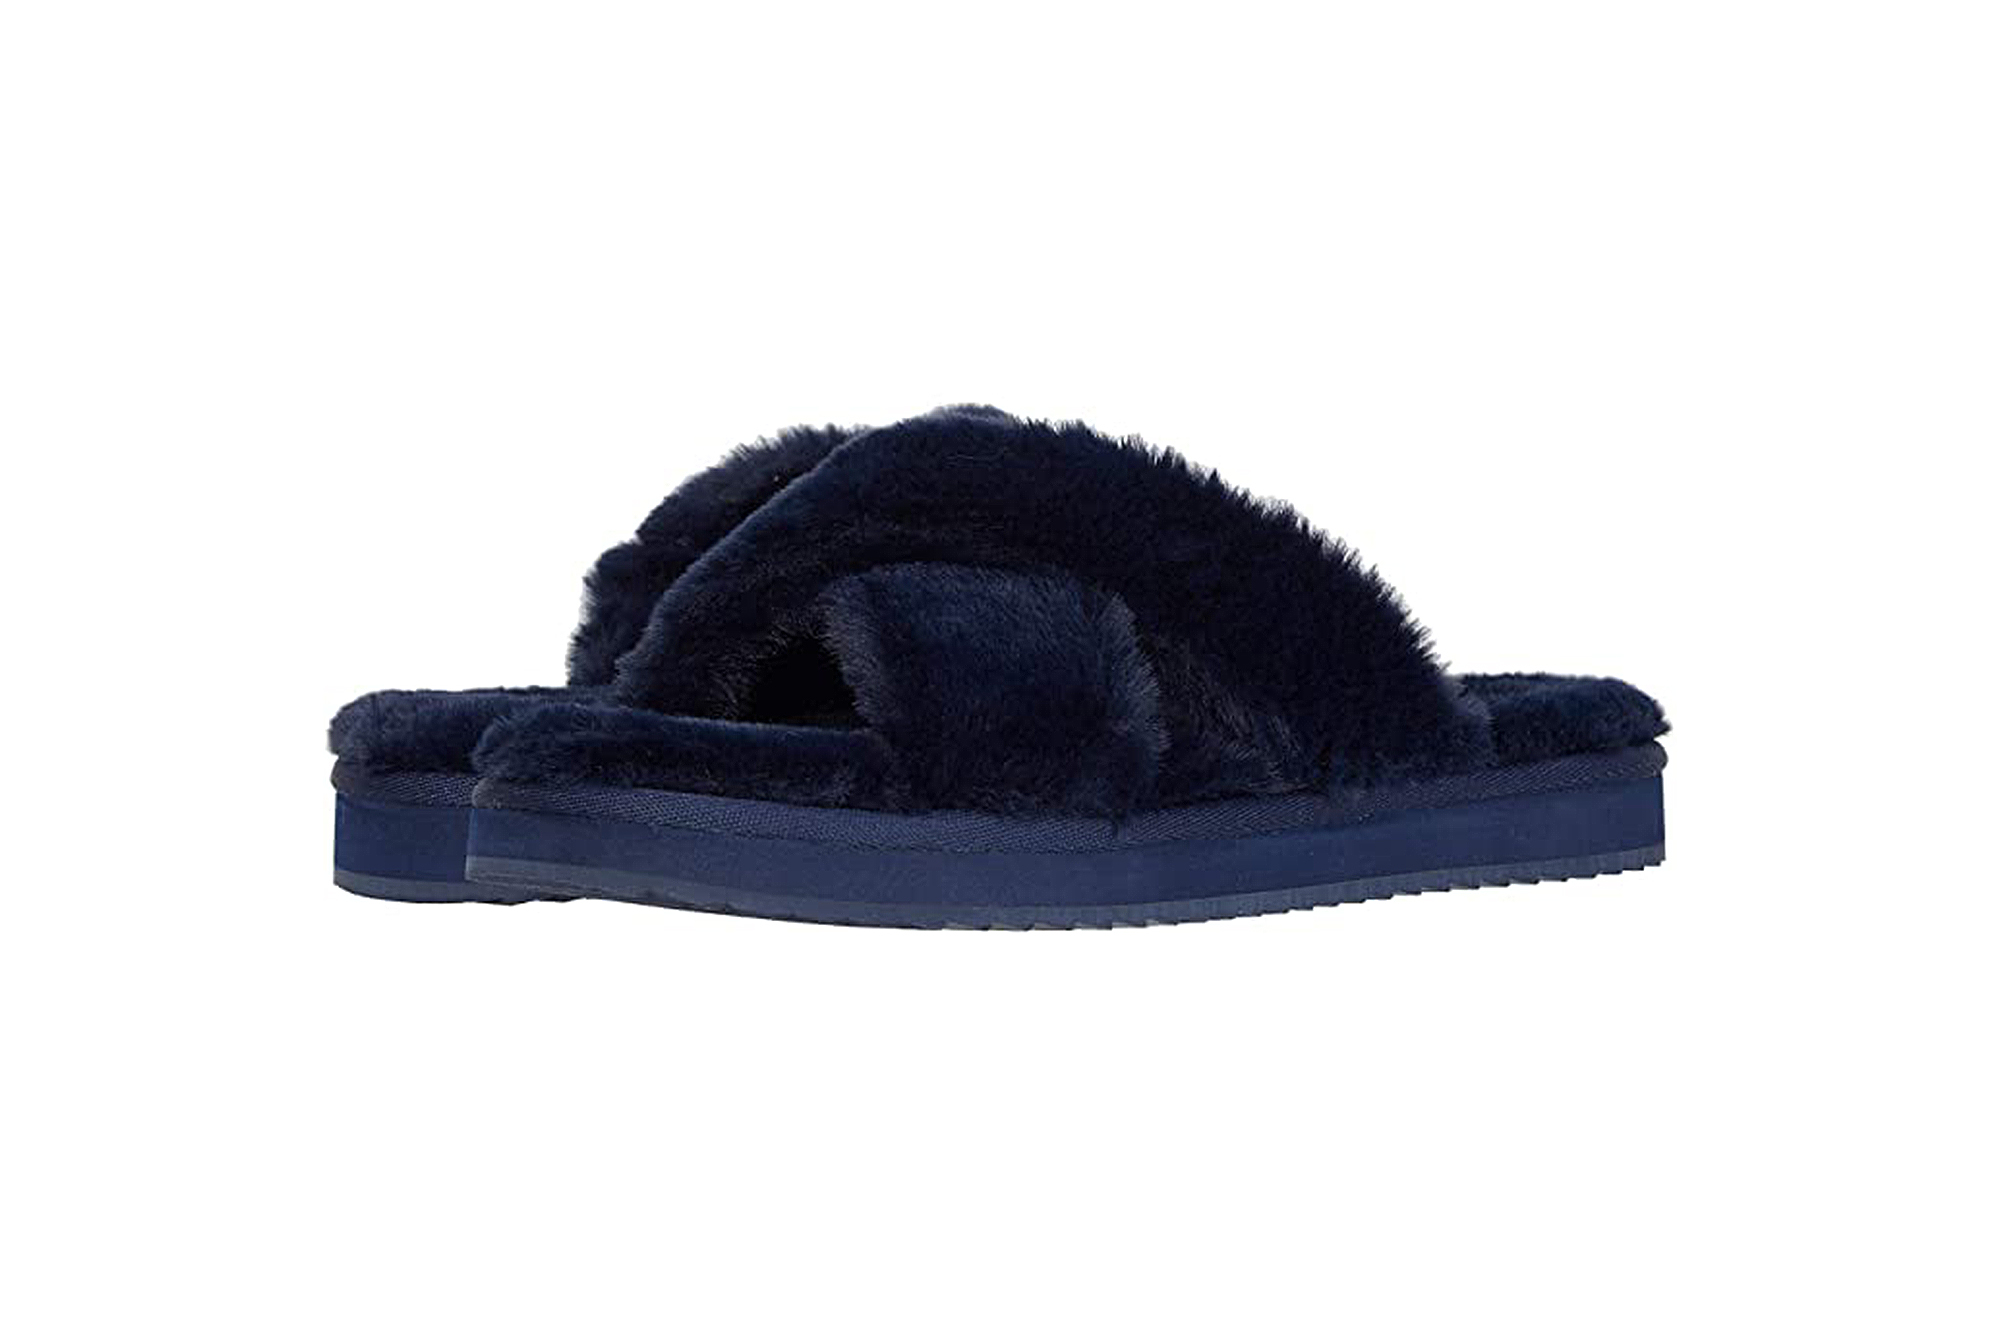 ugg slippers sale